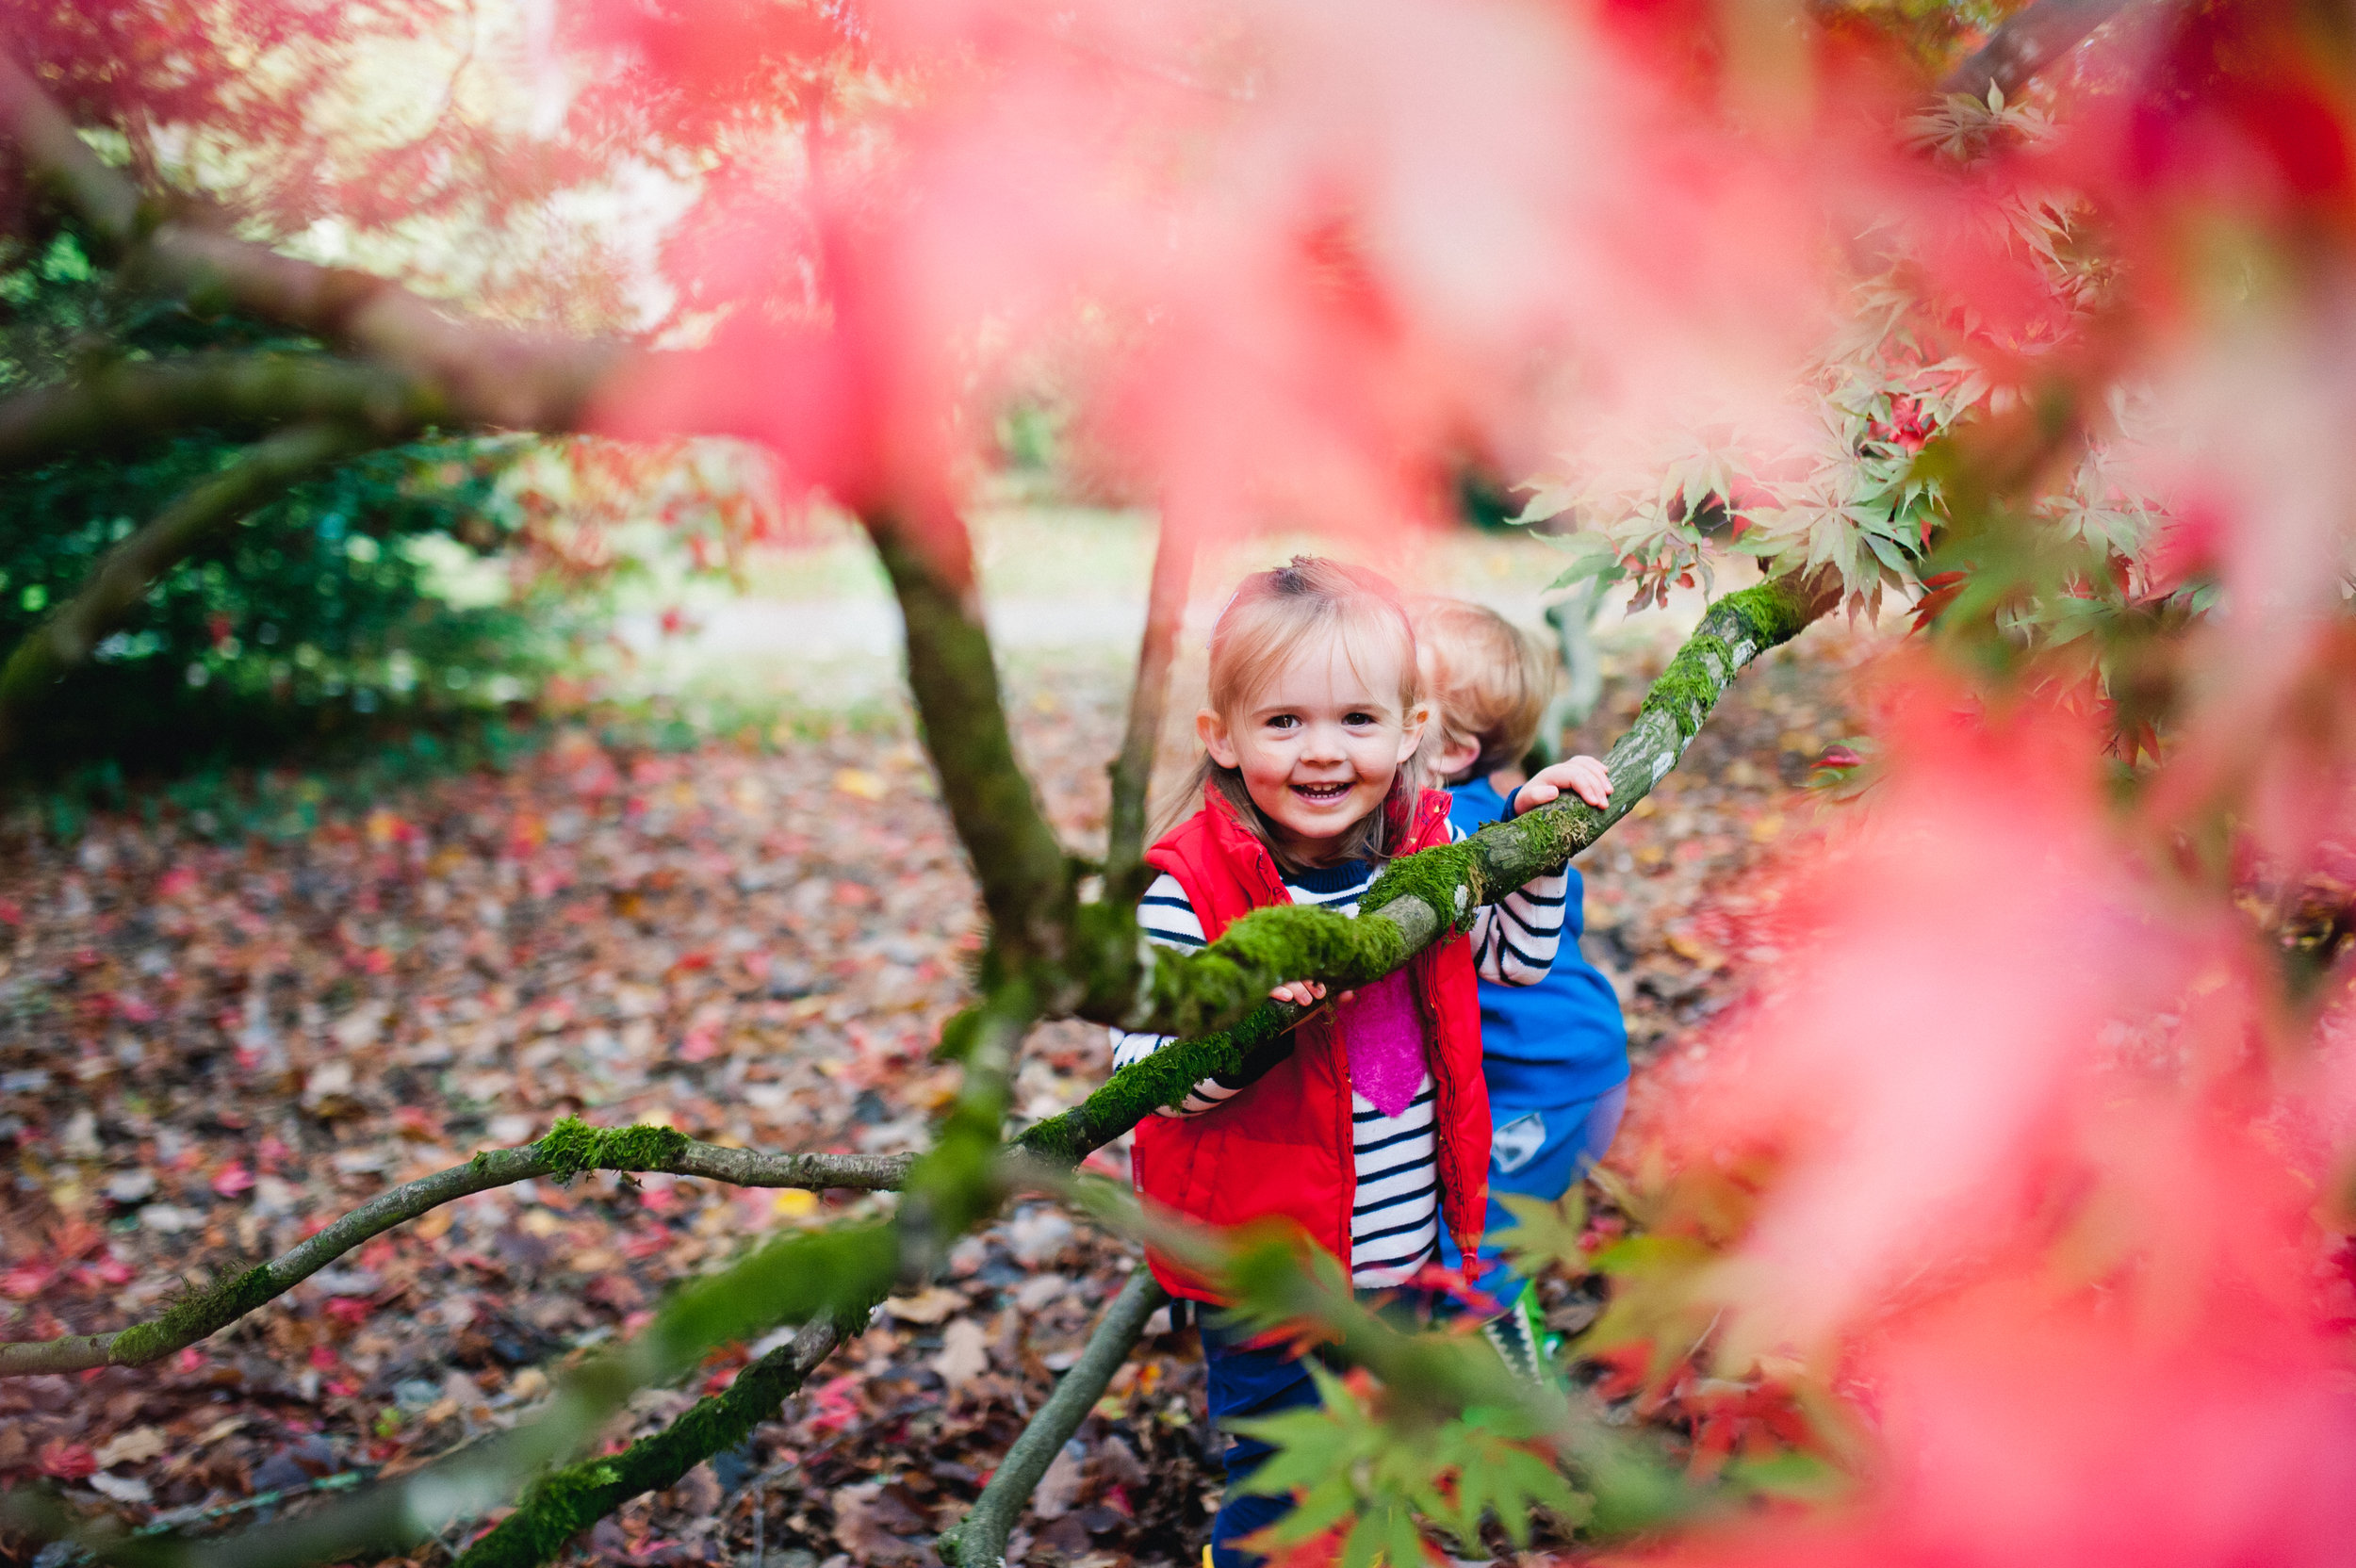 Adventure shoot - Climbing tree's in the forest, making sandcastles at the beach or just playing hide & seek at the local park. However your family chooses to be adventurous, if you love the outdoors then an adventure photoshoot is for you!2019 prices just £150